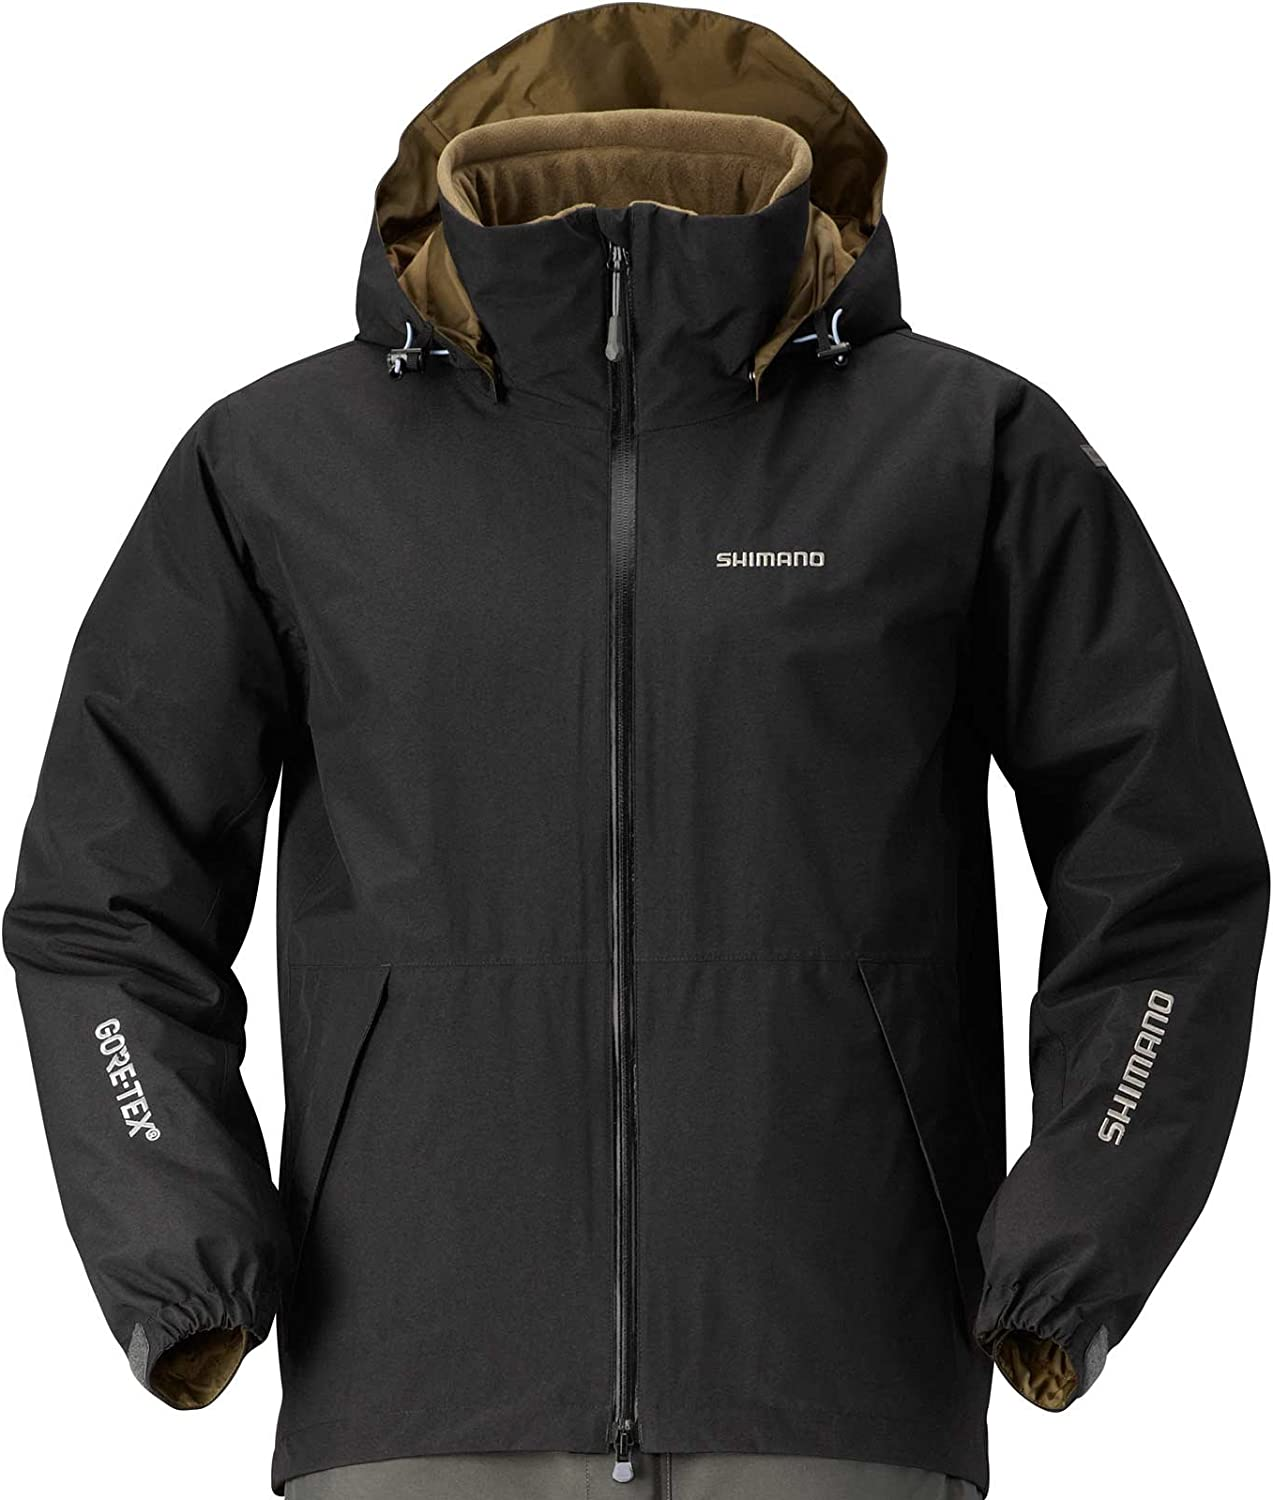 Shimano Basic Jacket Black